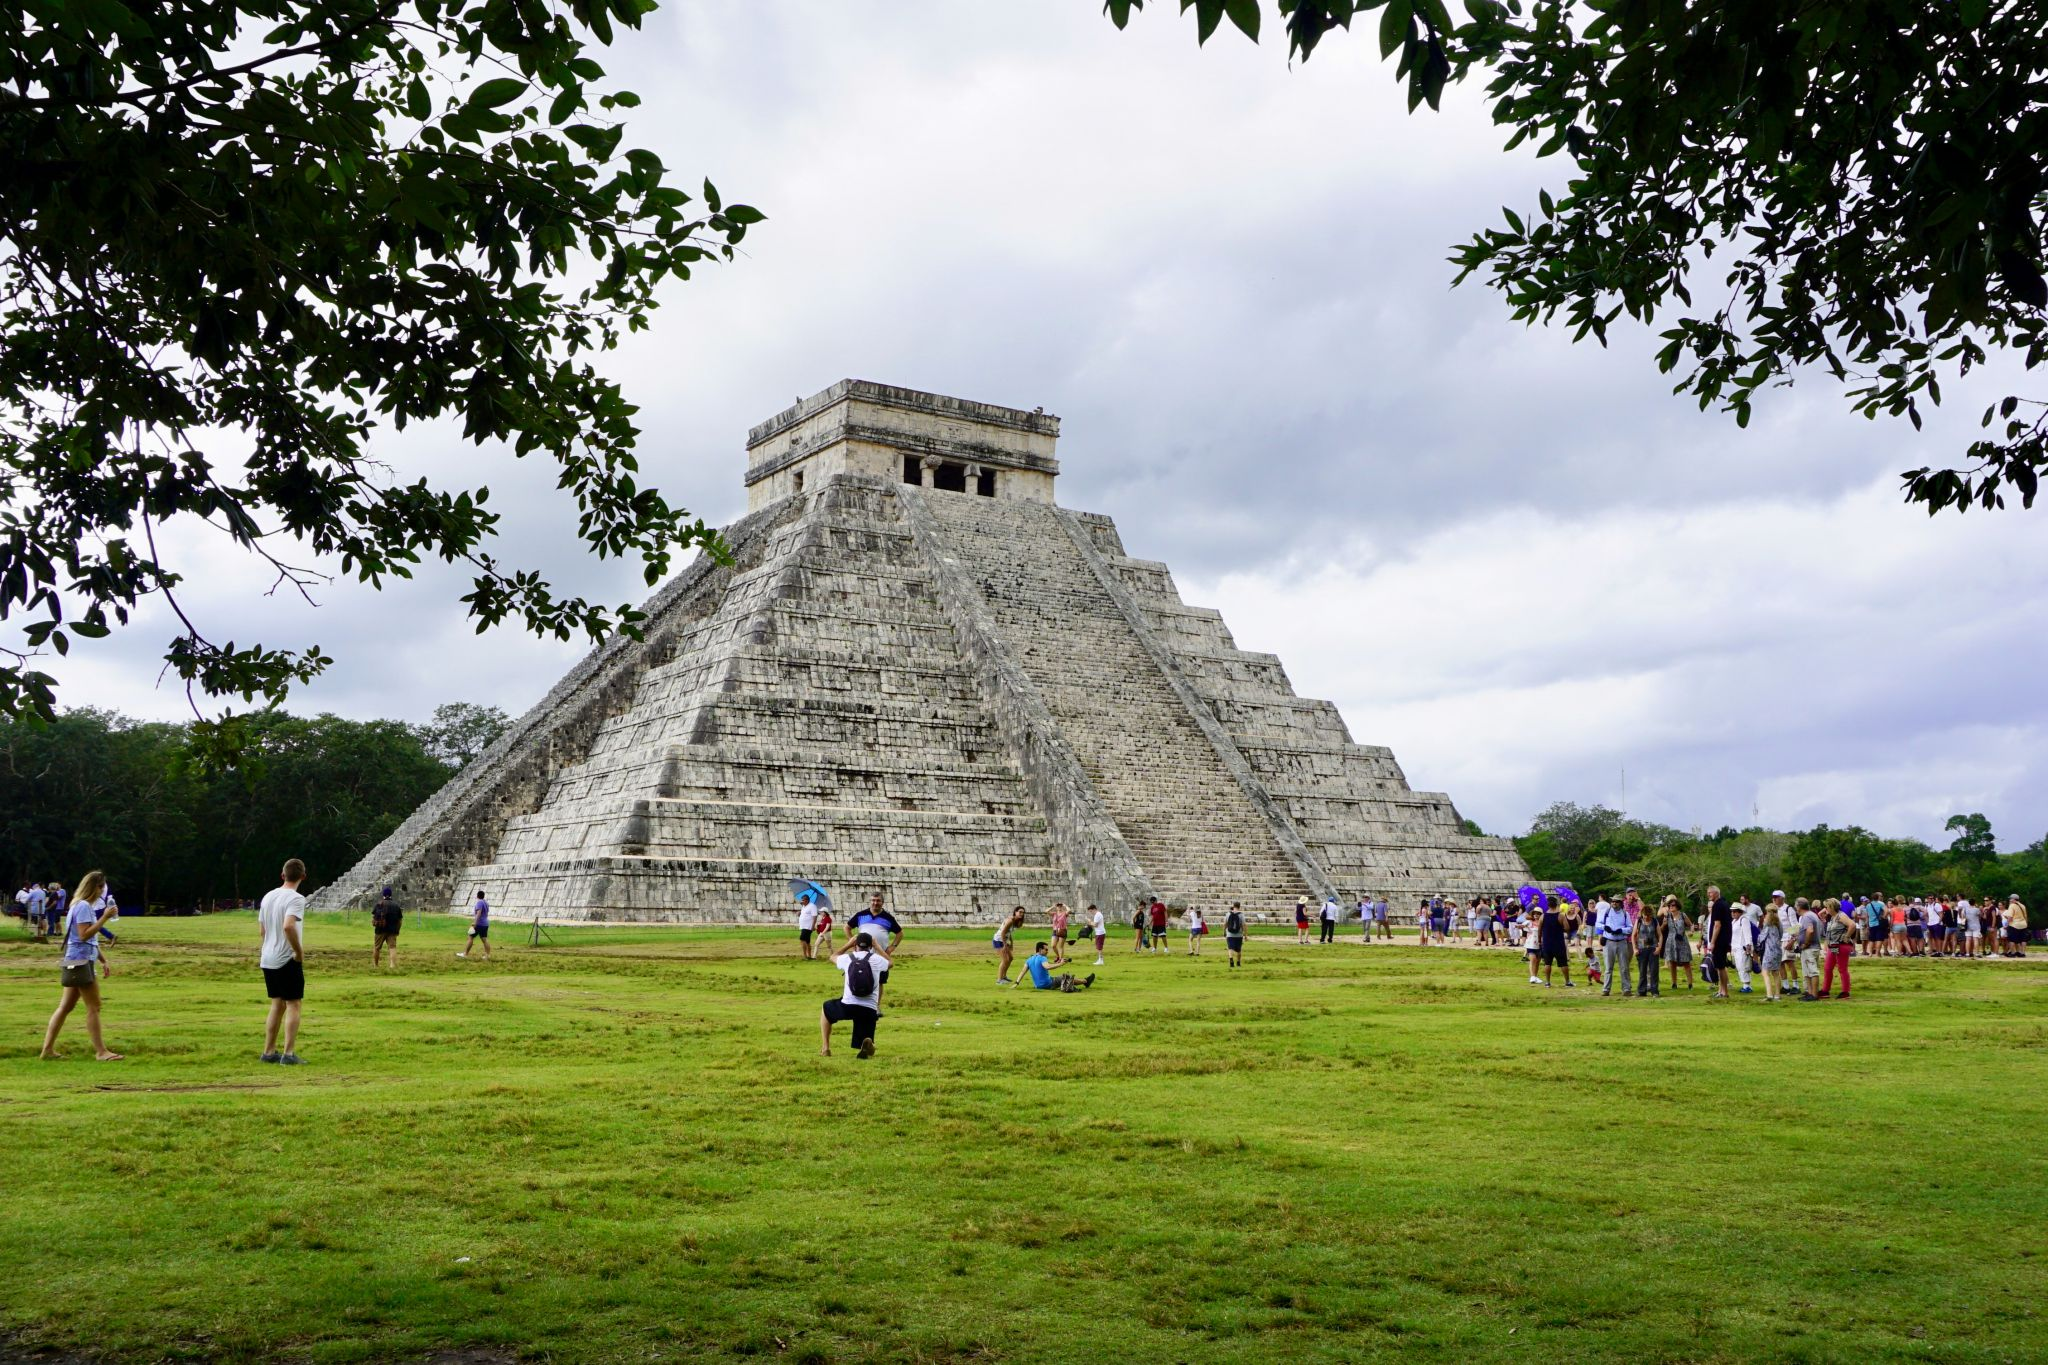 Interesting facts about El Castillo in Chichen Itzá